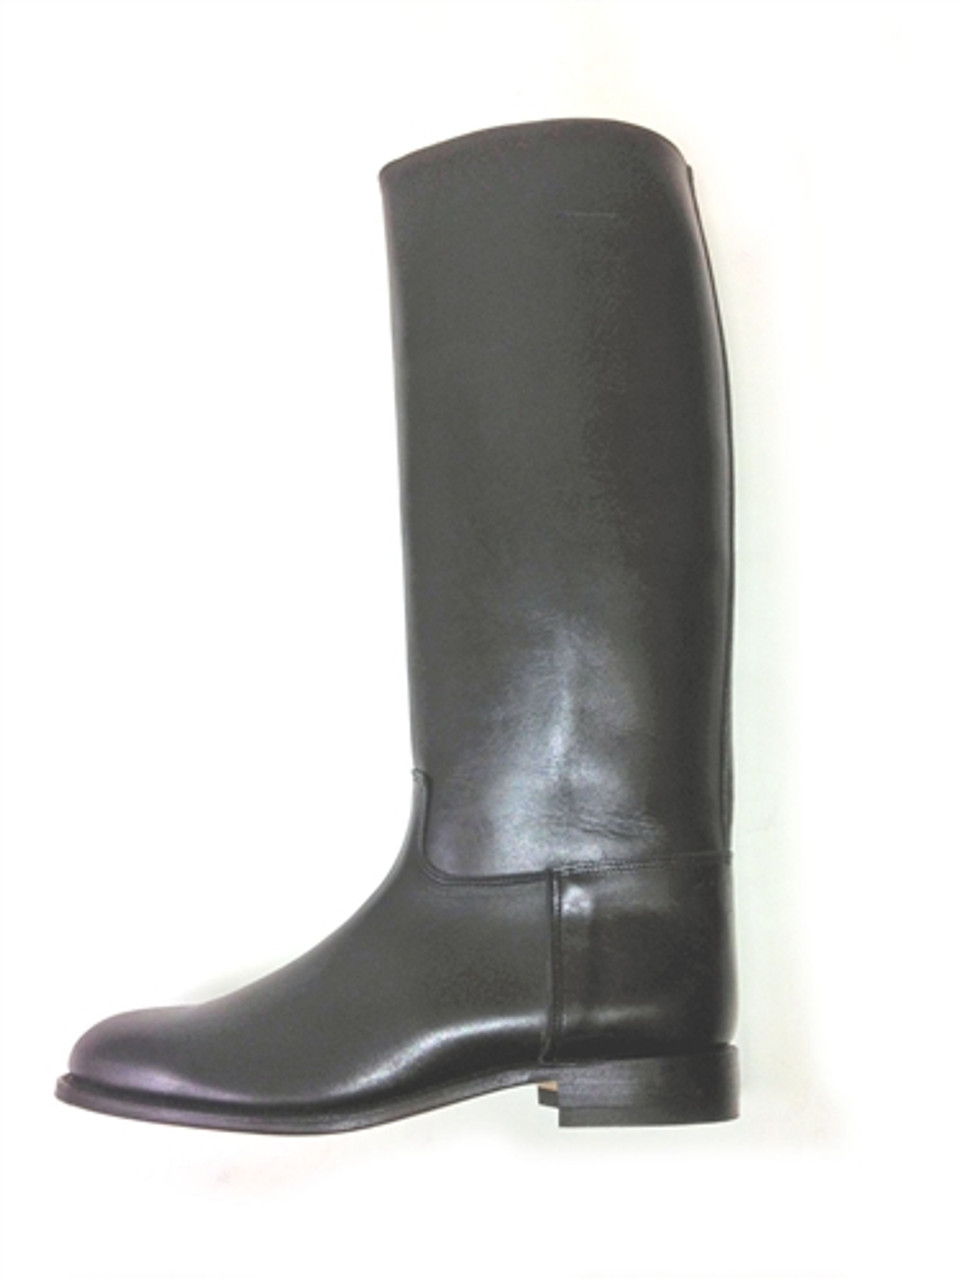 100% leather Riding Boots from Hessen Antique